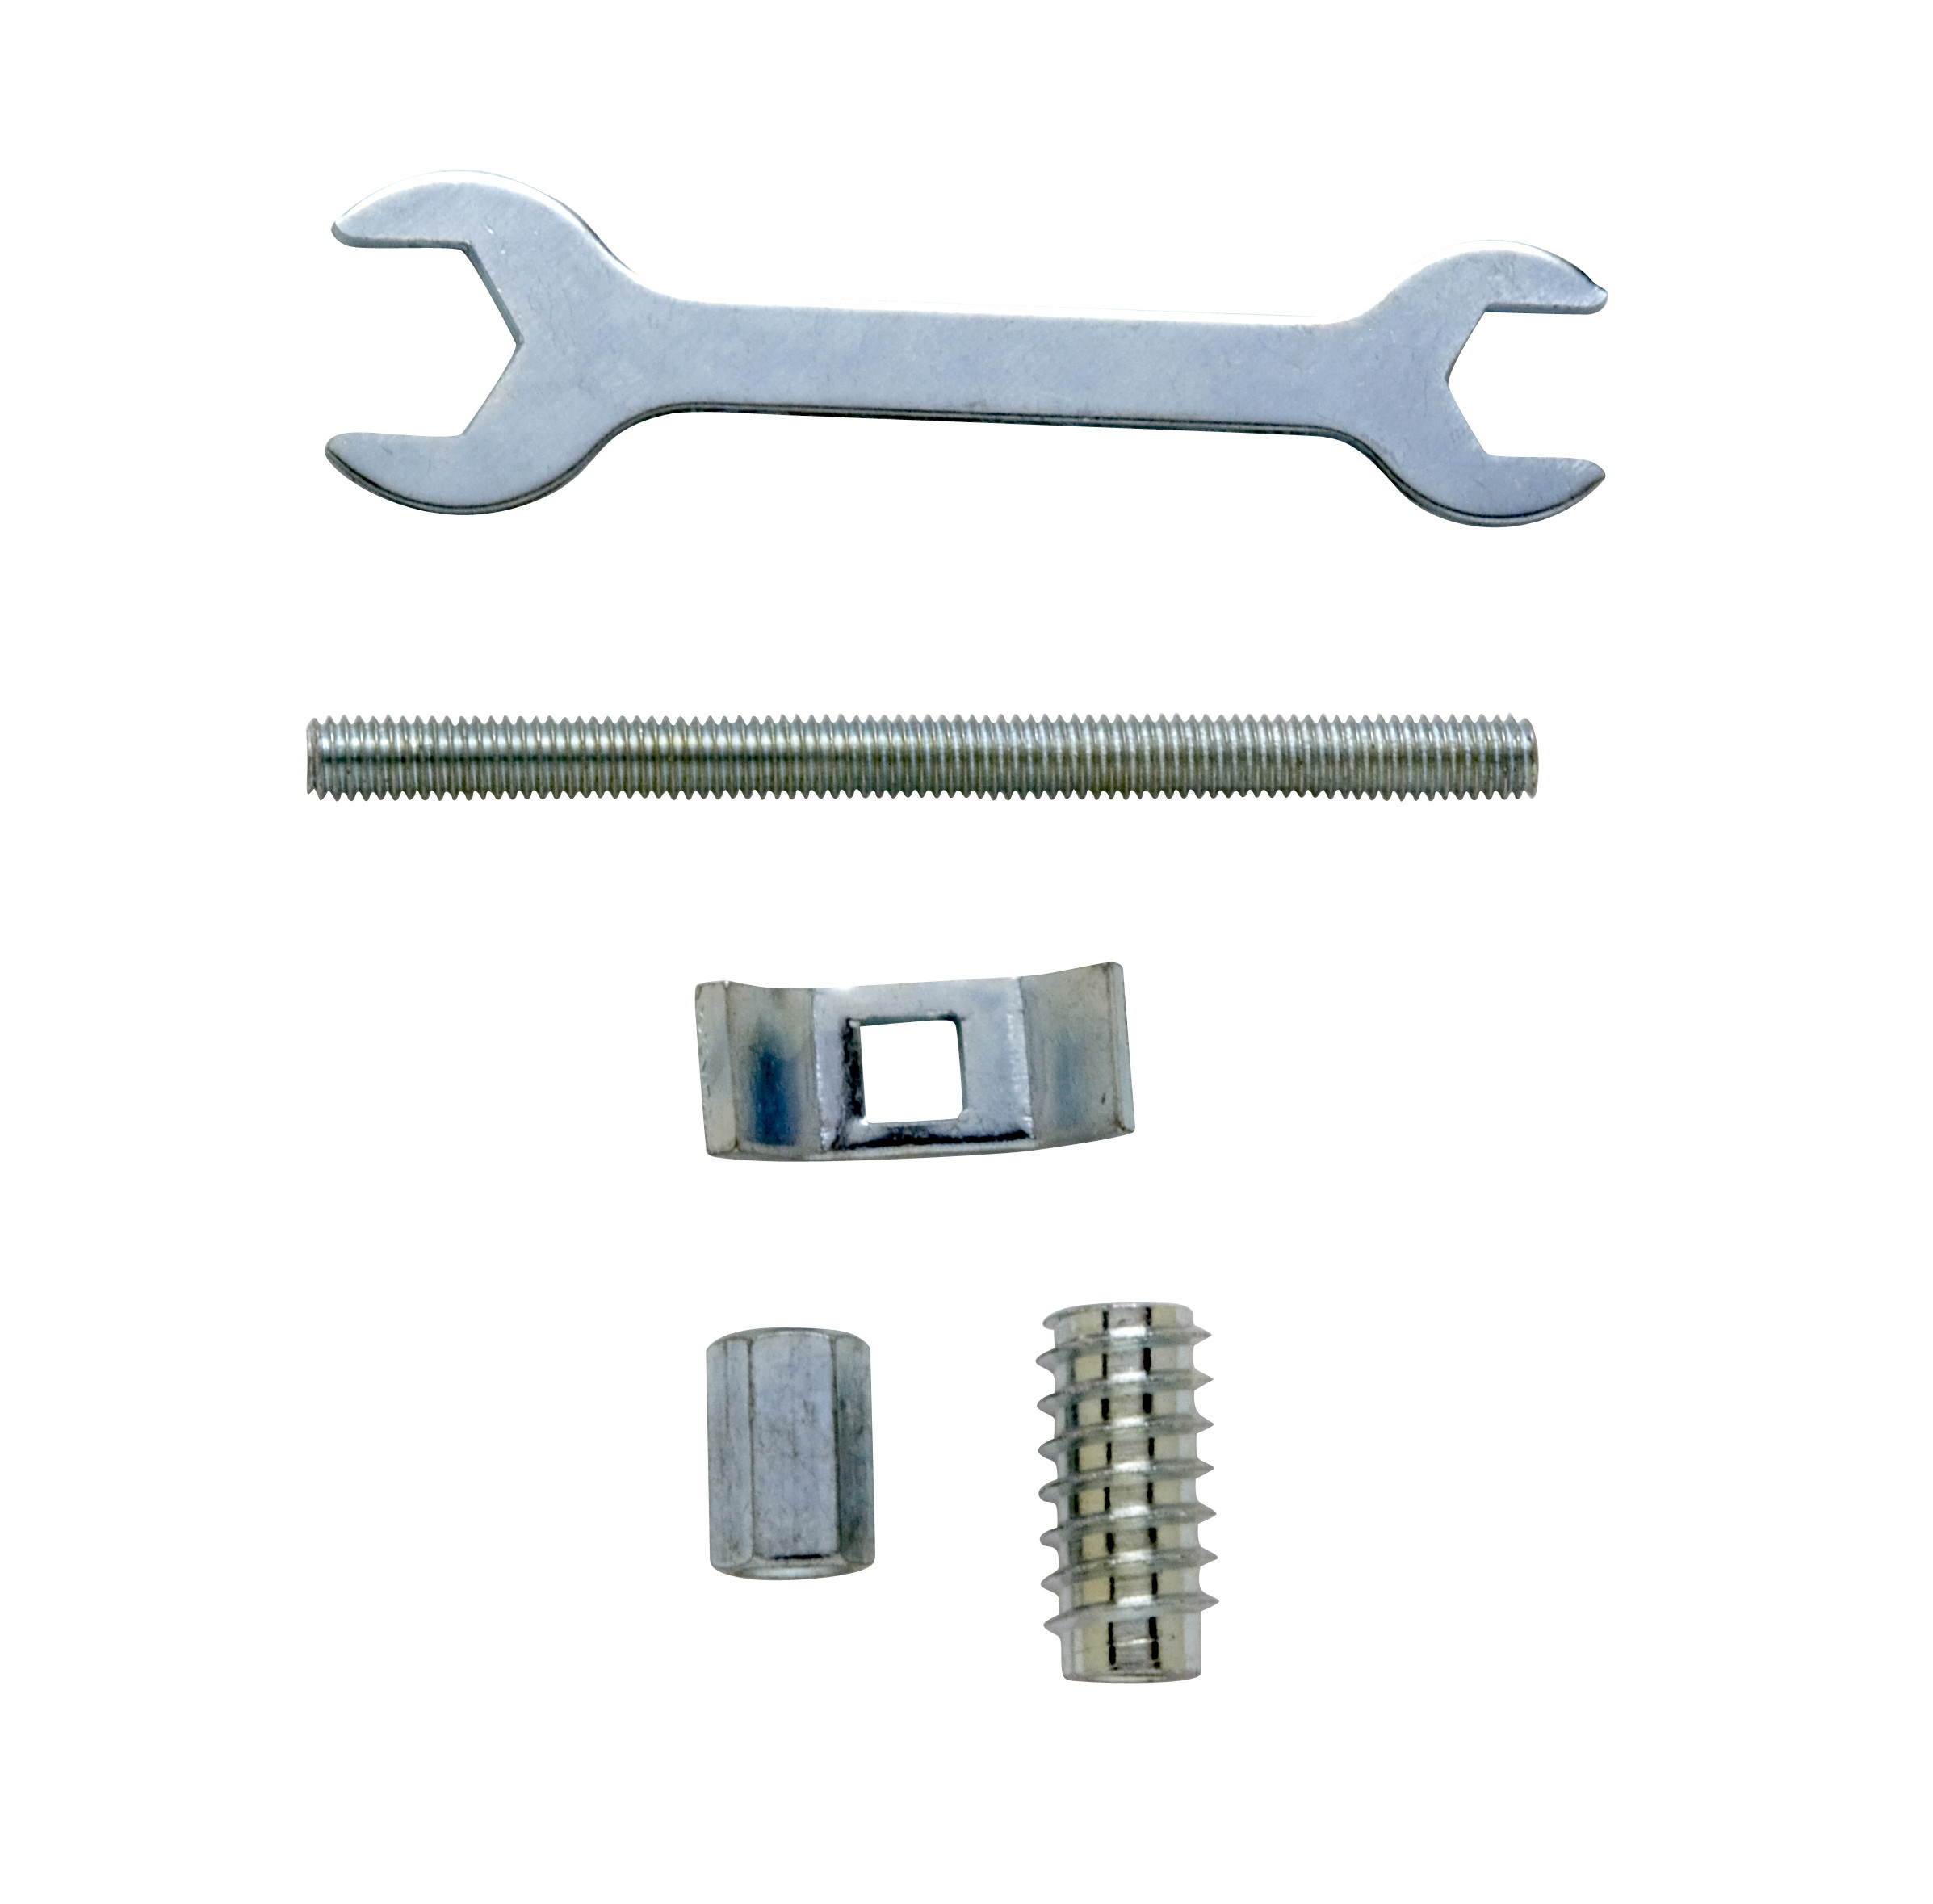 4 Decking Balustrade Bolts & 1 Spanner